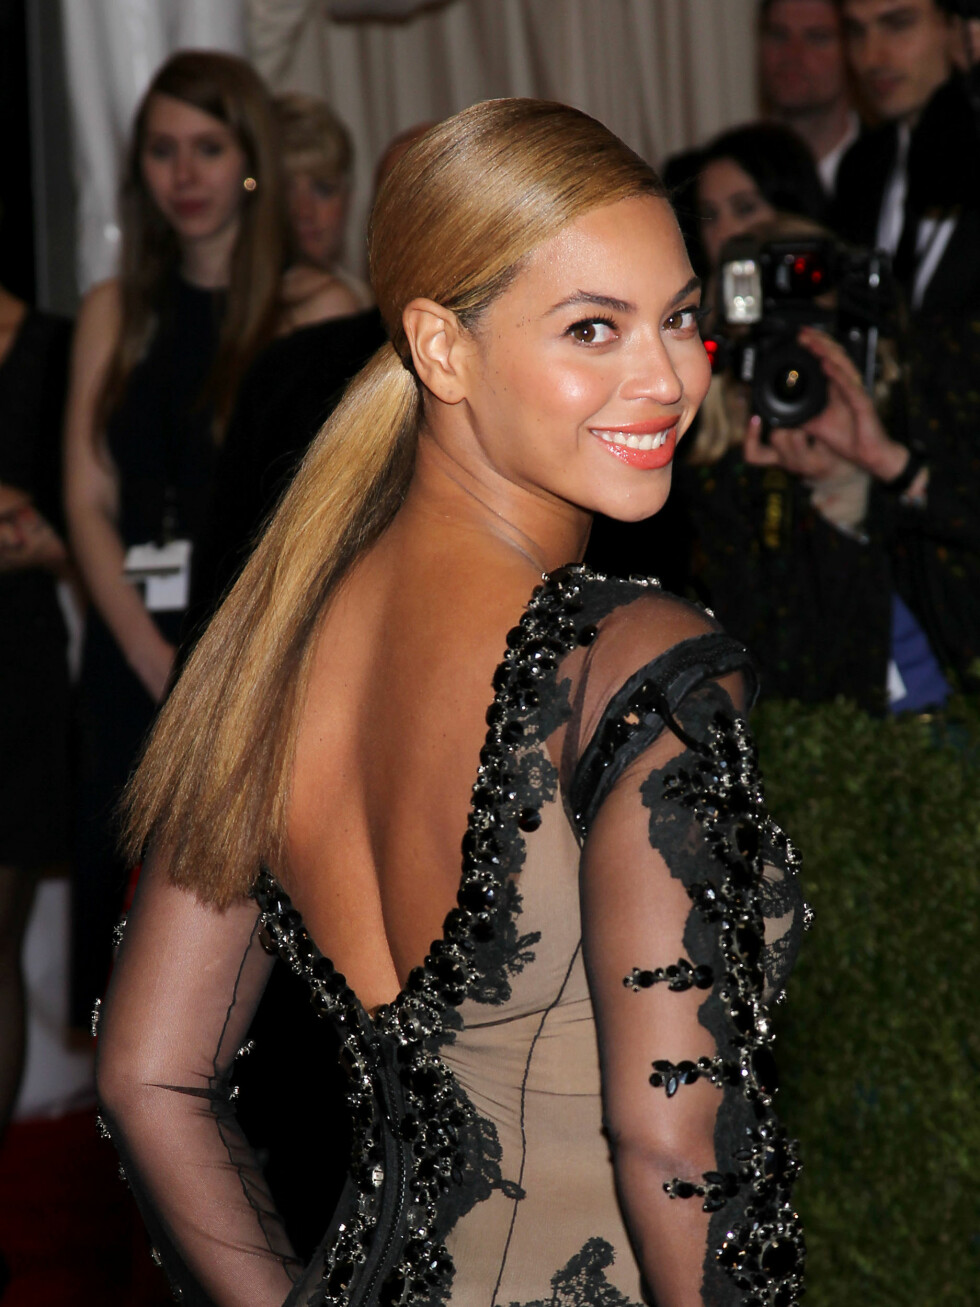 Beyoncé Foto: All Over Press